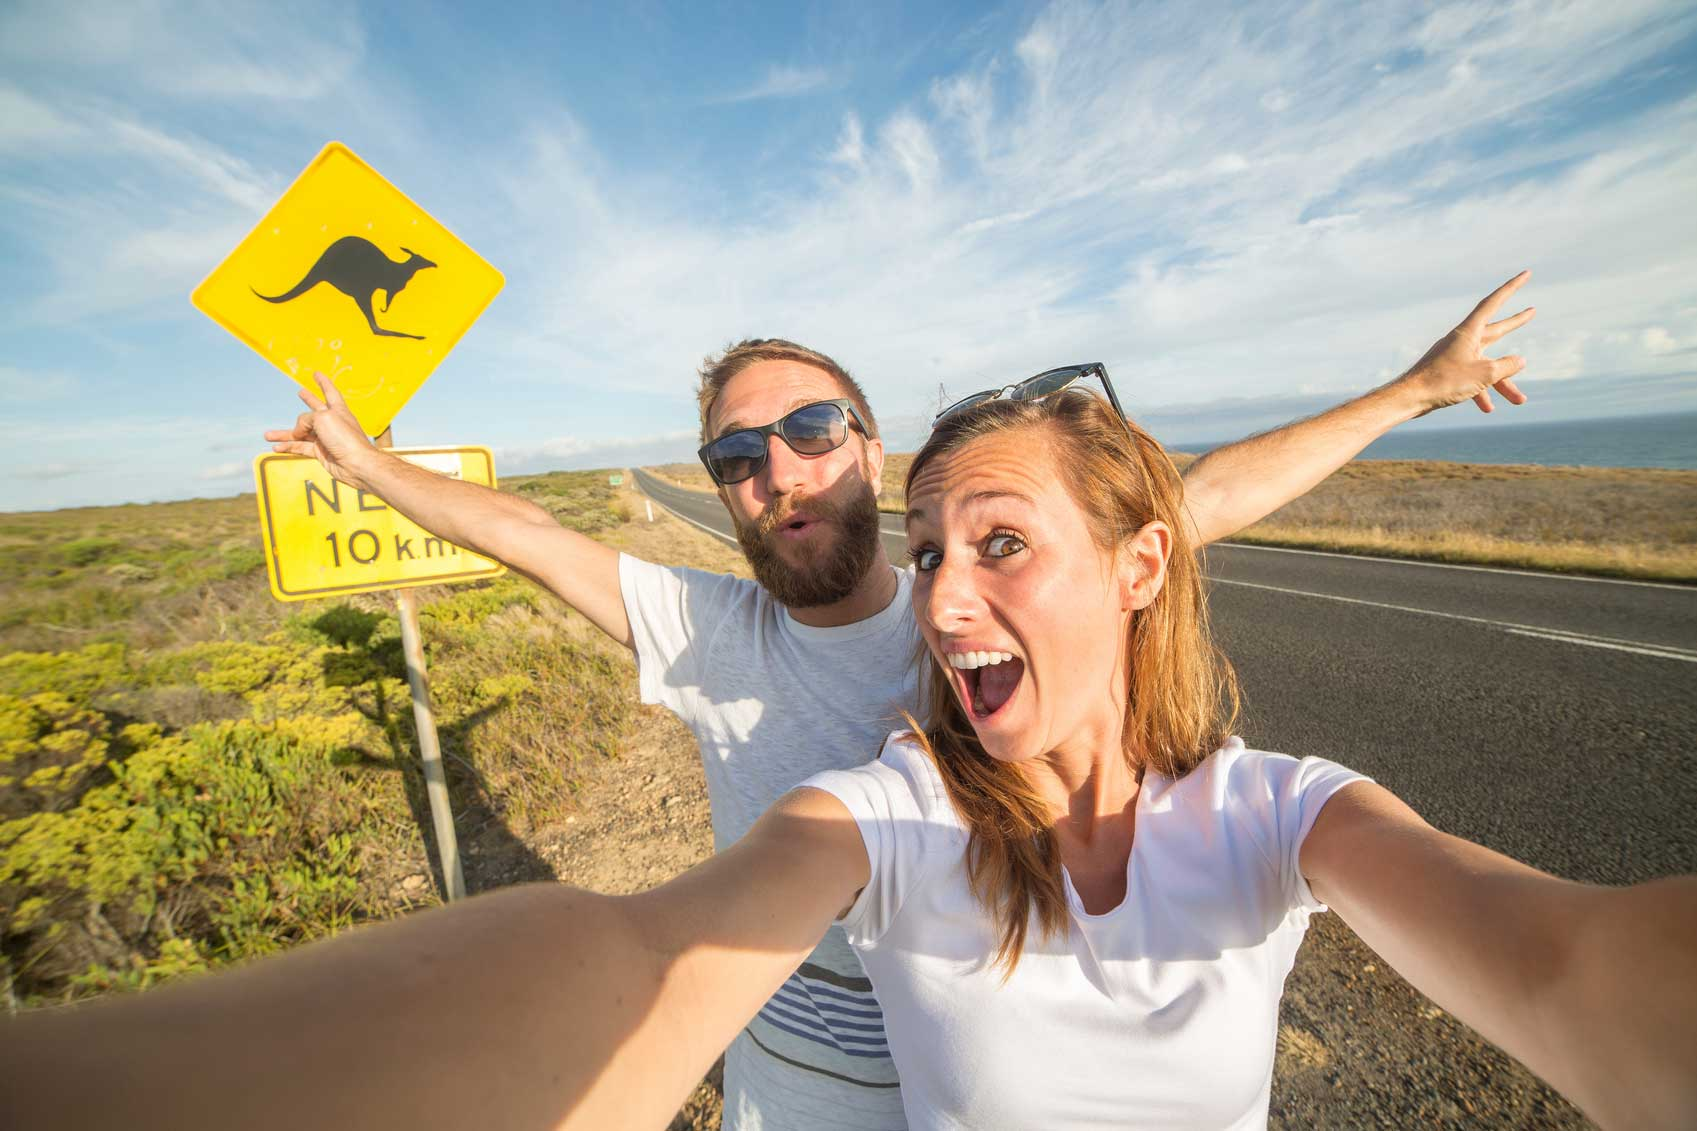 Couple-take-selfie-portrait-in-Australia-000089828419_Medium